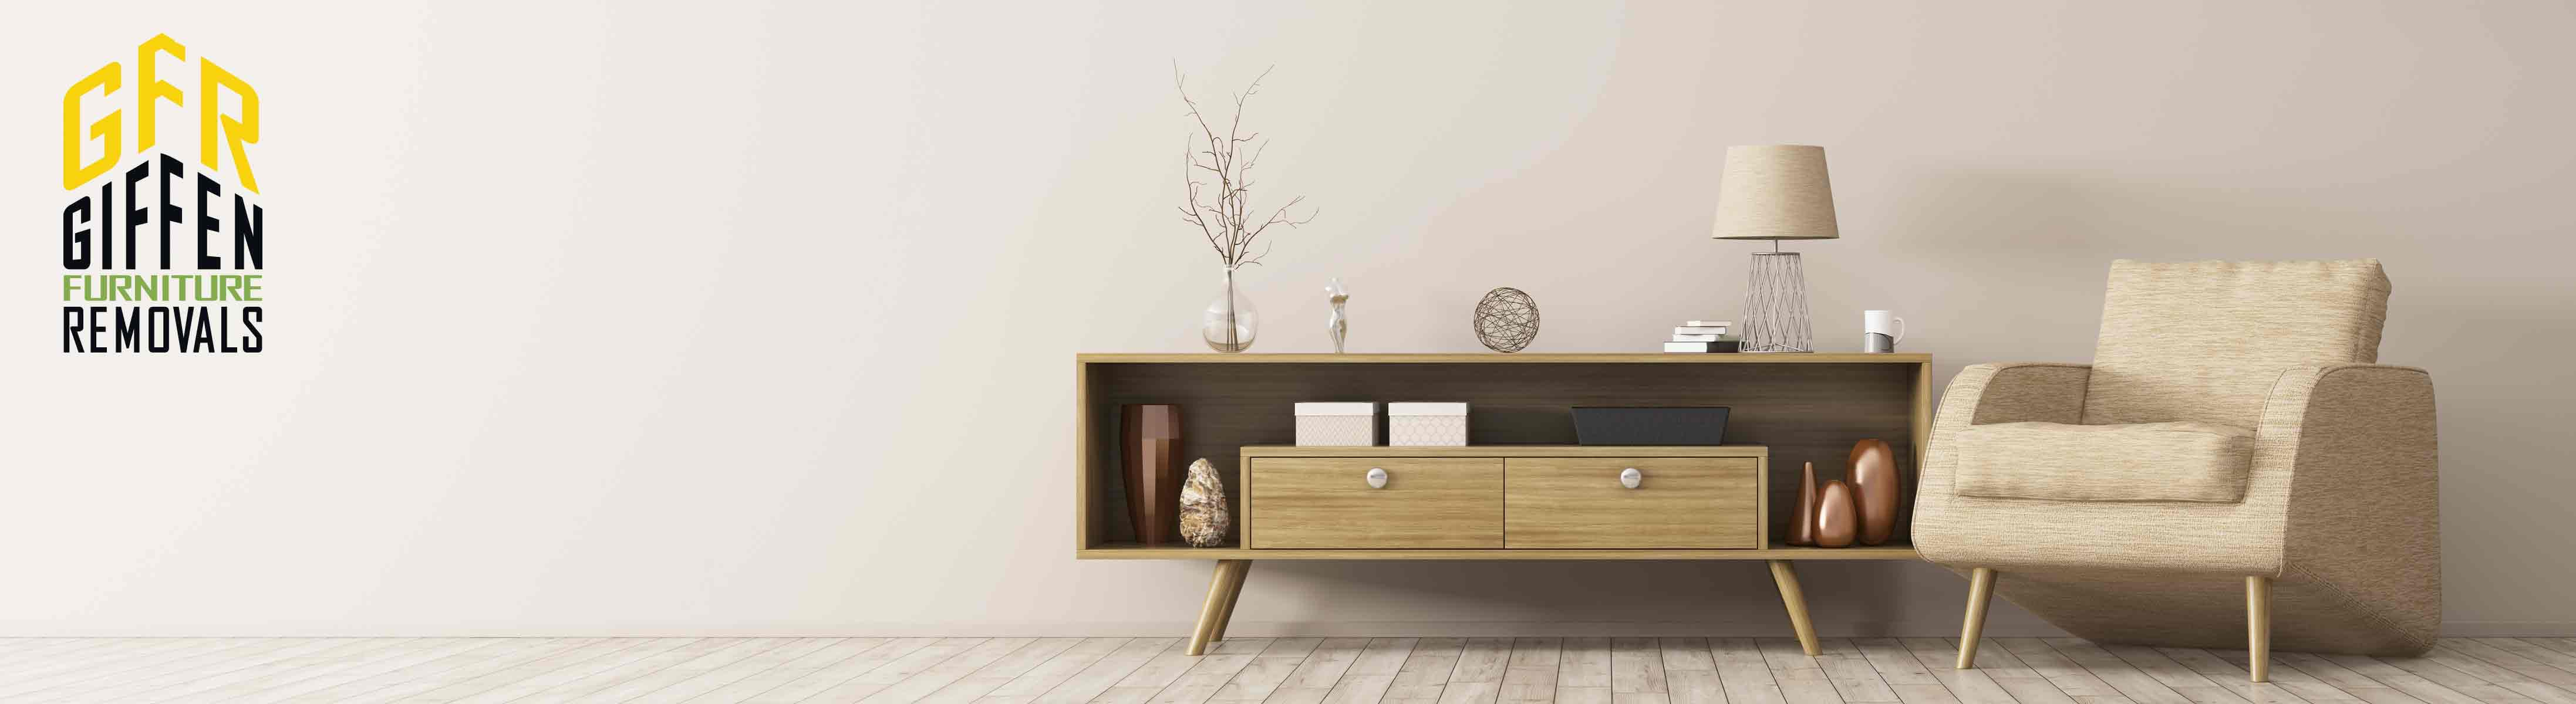 Giffen Furniture Removals Top 8 Tips For Safe Furniture Storage